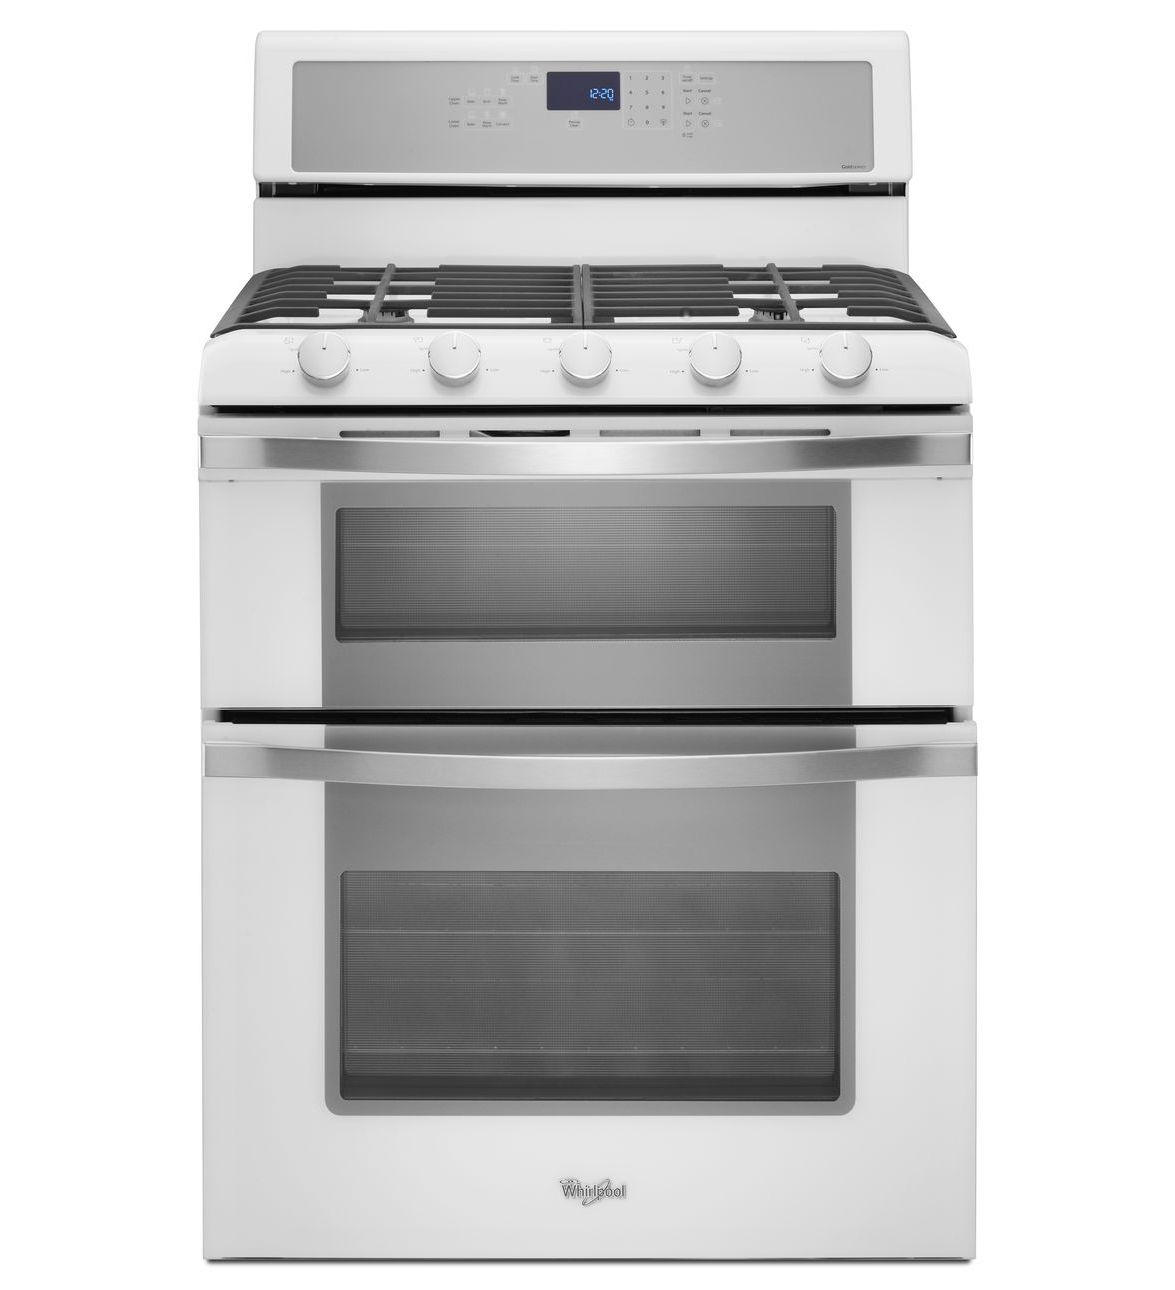 Whirlpool white ice oven - Whirlpool Ranges